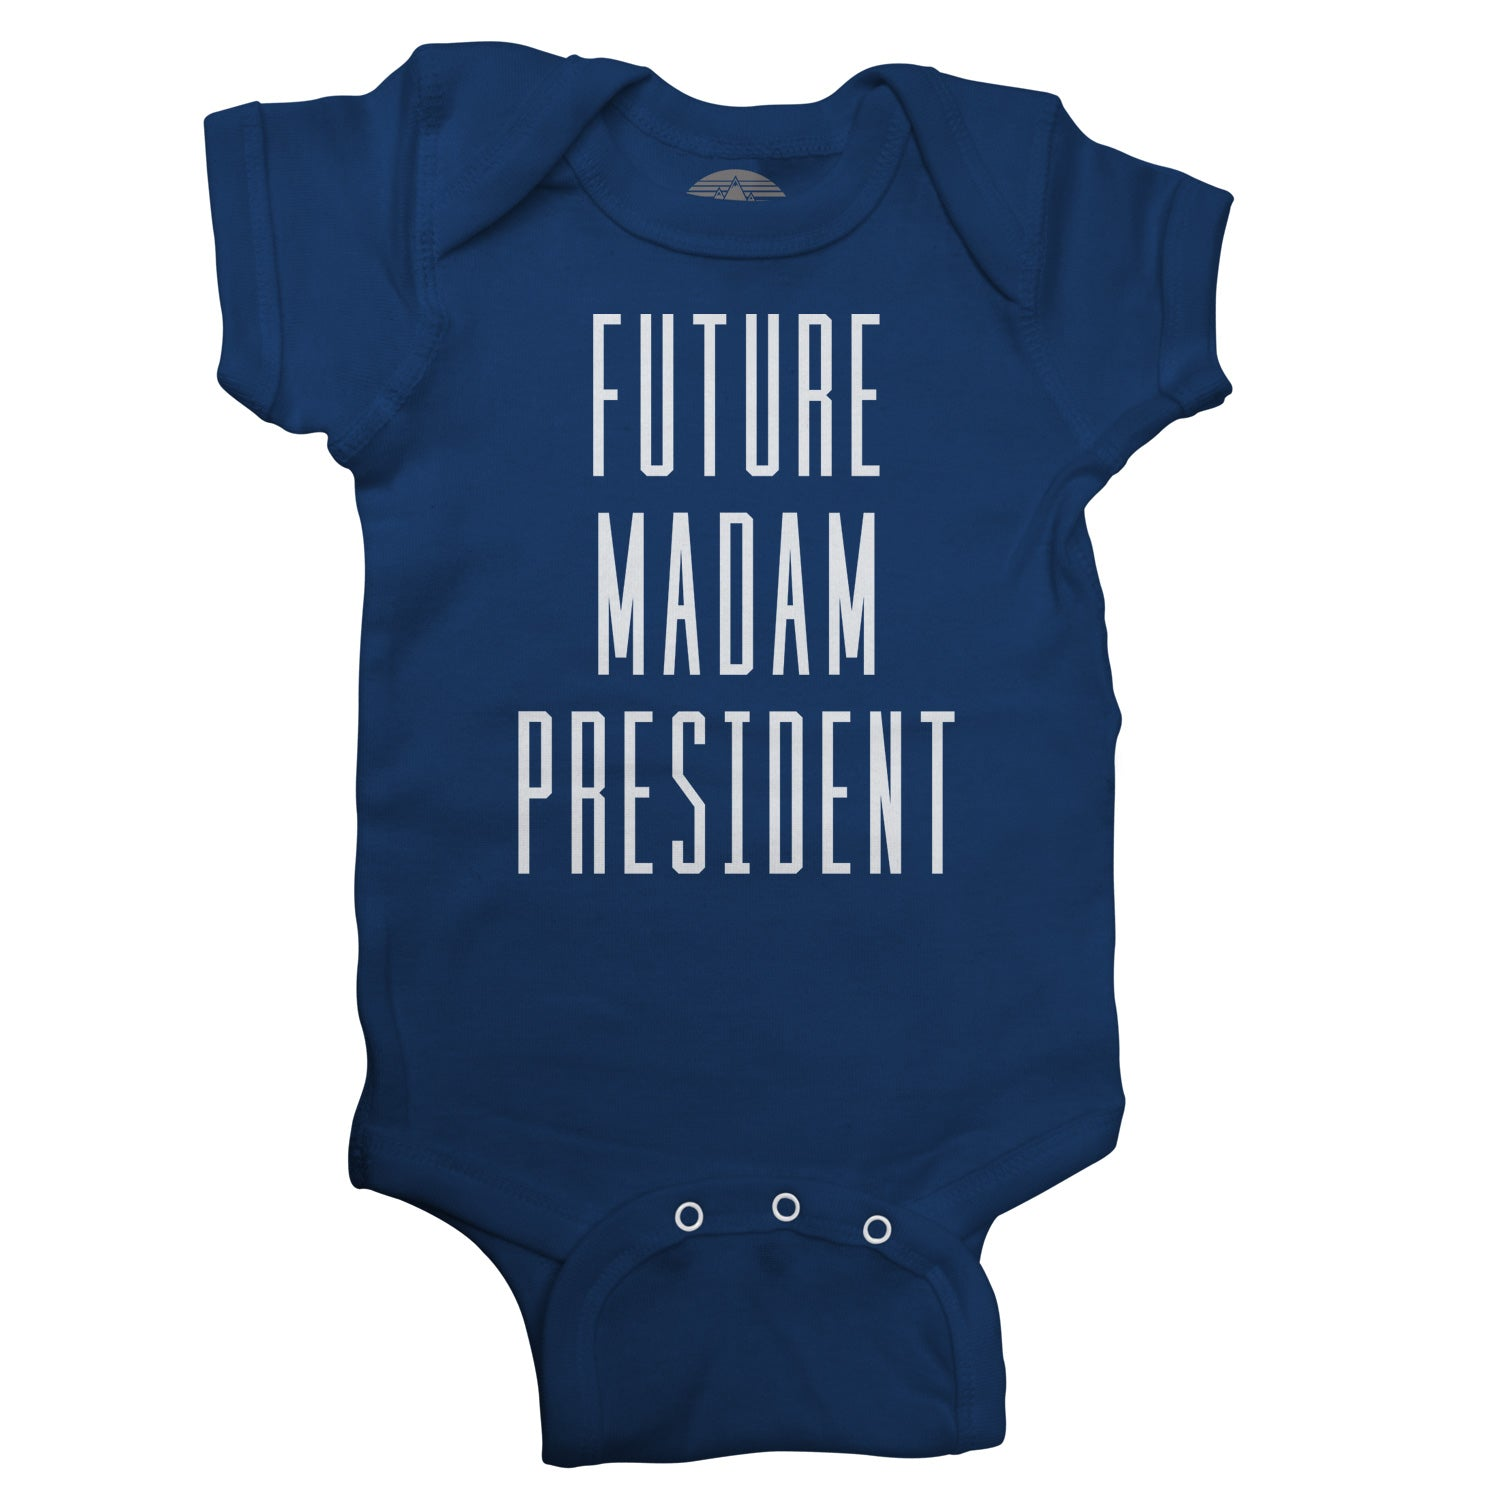 Future Madam President Infant Bodysuit - Unisex Fit